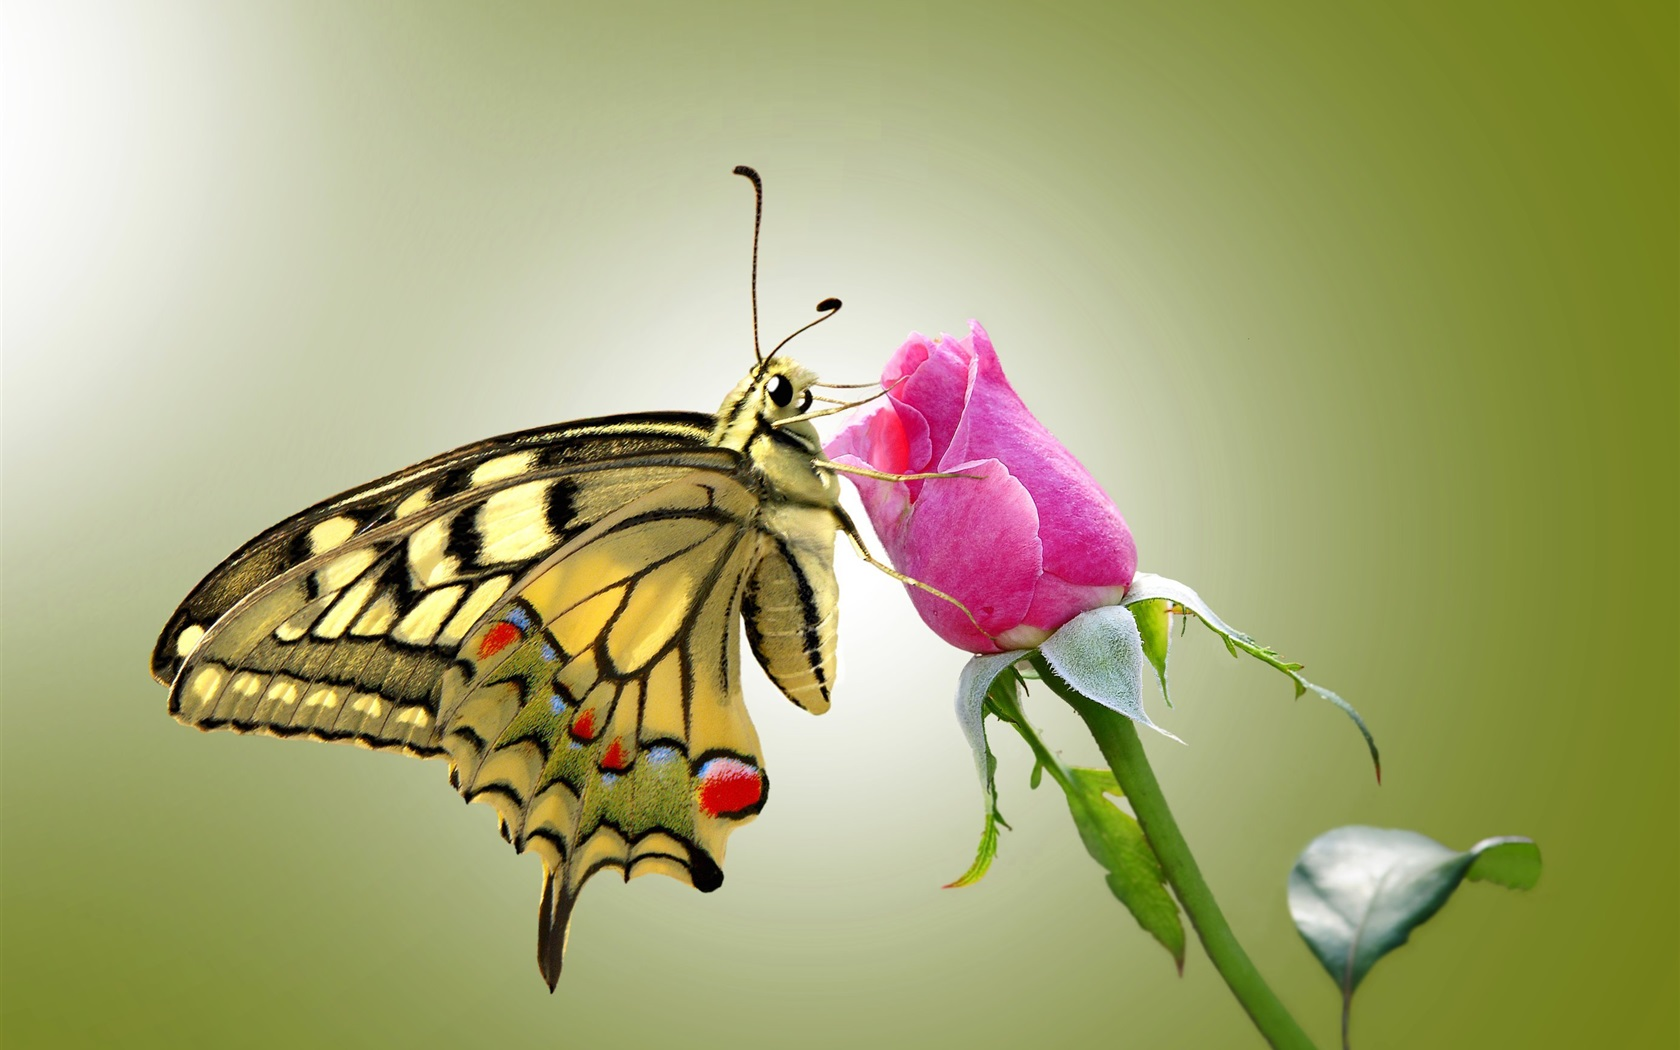 Butterfly and pink rose wallpaper 1680x1050